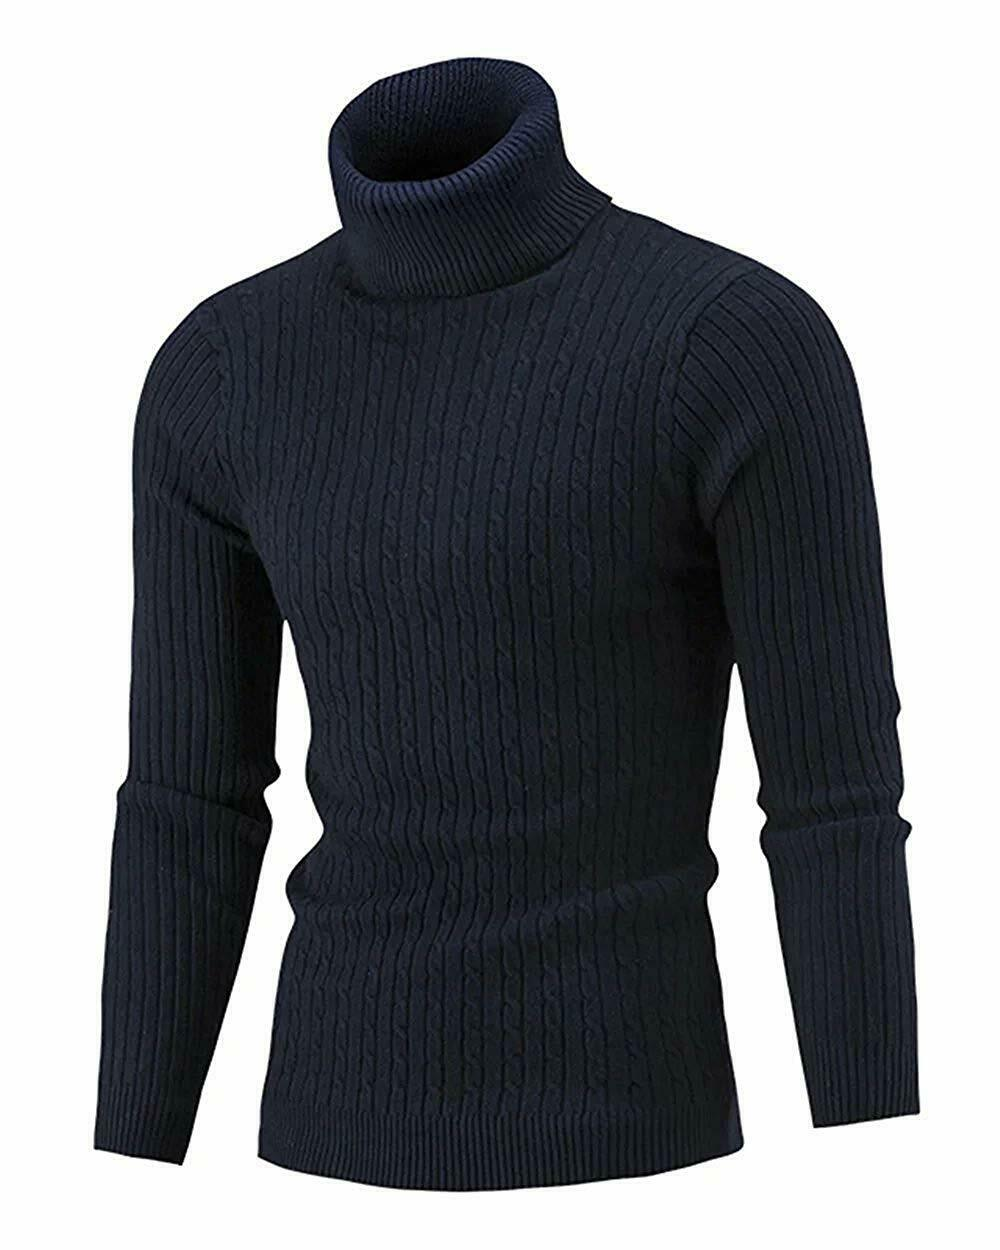 QZH.DUAO Cameinic Mens Casual Slim Fit Turtleneck Pullover Sweaters with Twist Patterned /& Long Sleeve T-Shirt